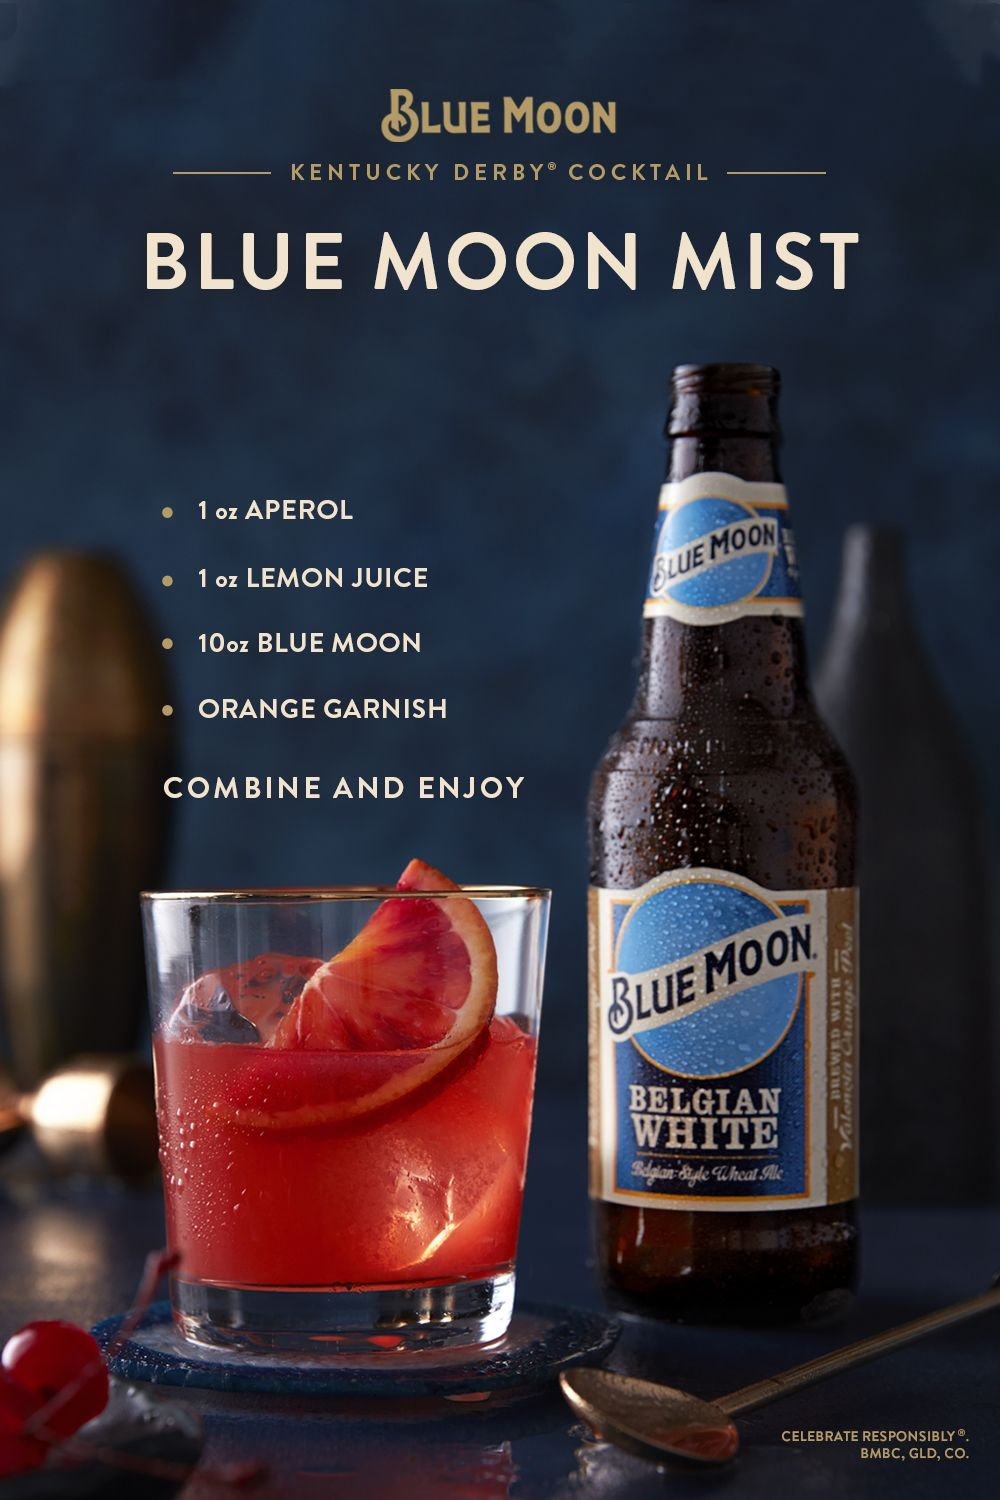 Blue Moon Is The Official Craft Beer Sponsor Of The Kentucky Derby For Your Derby Party Mix Things U Beer Cocktail Recipes Alcohol Drink Recipes Beer Recipes